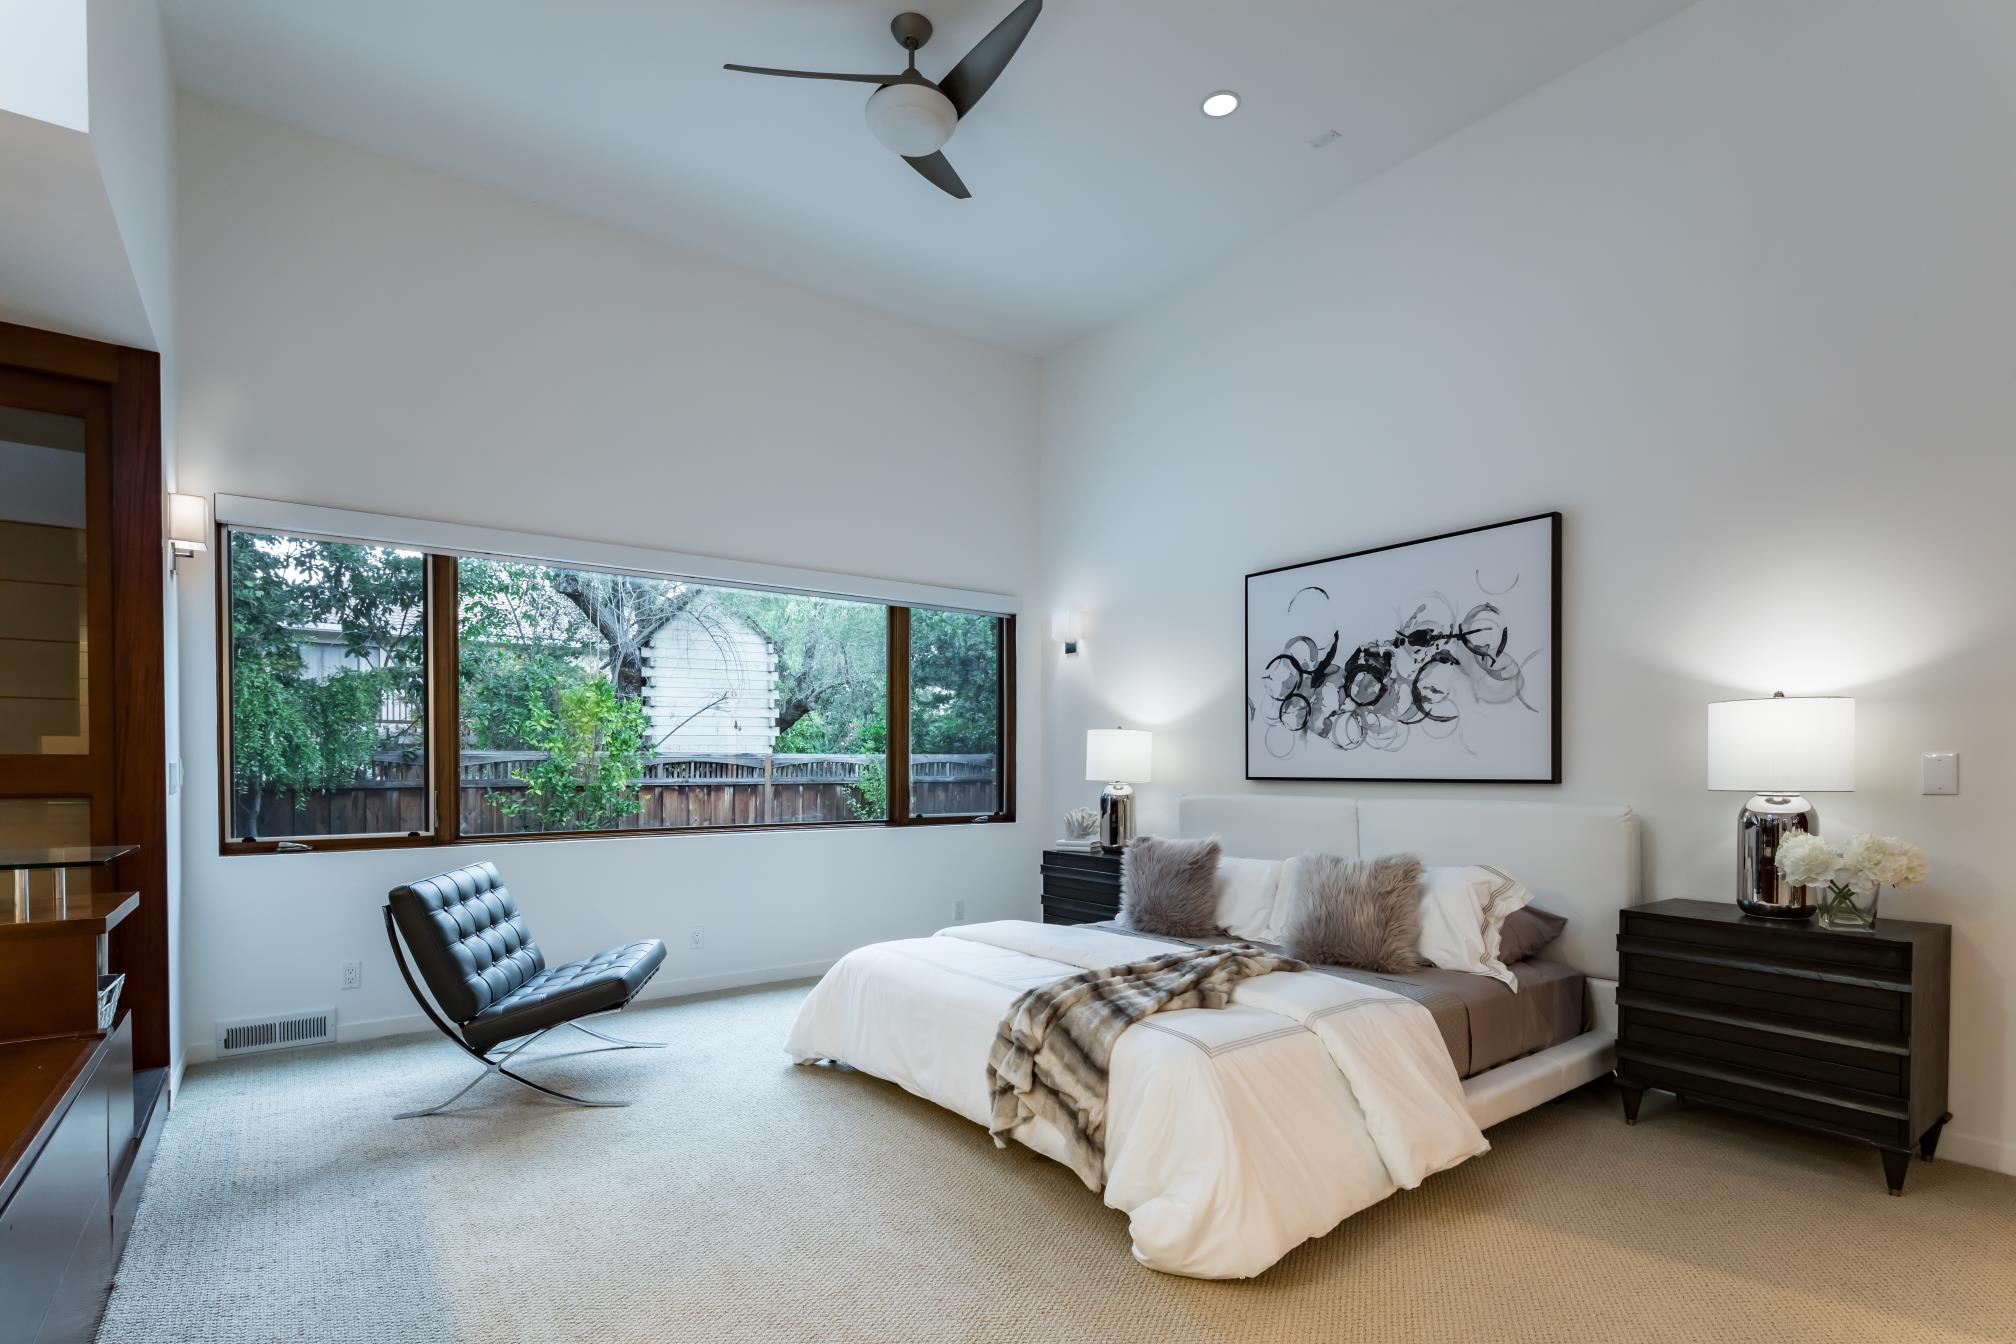 Advance Master bedroom, interior design, architect work, Los Altos